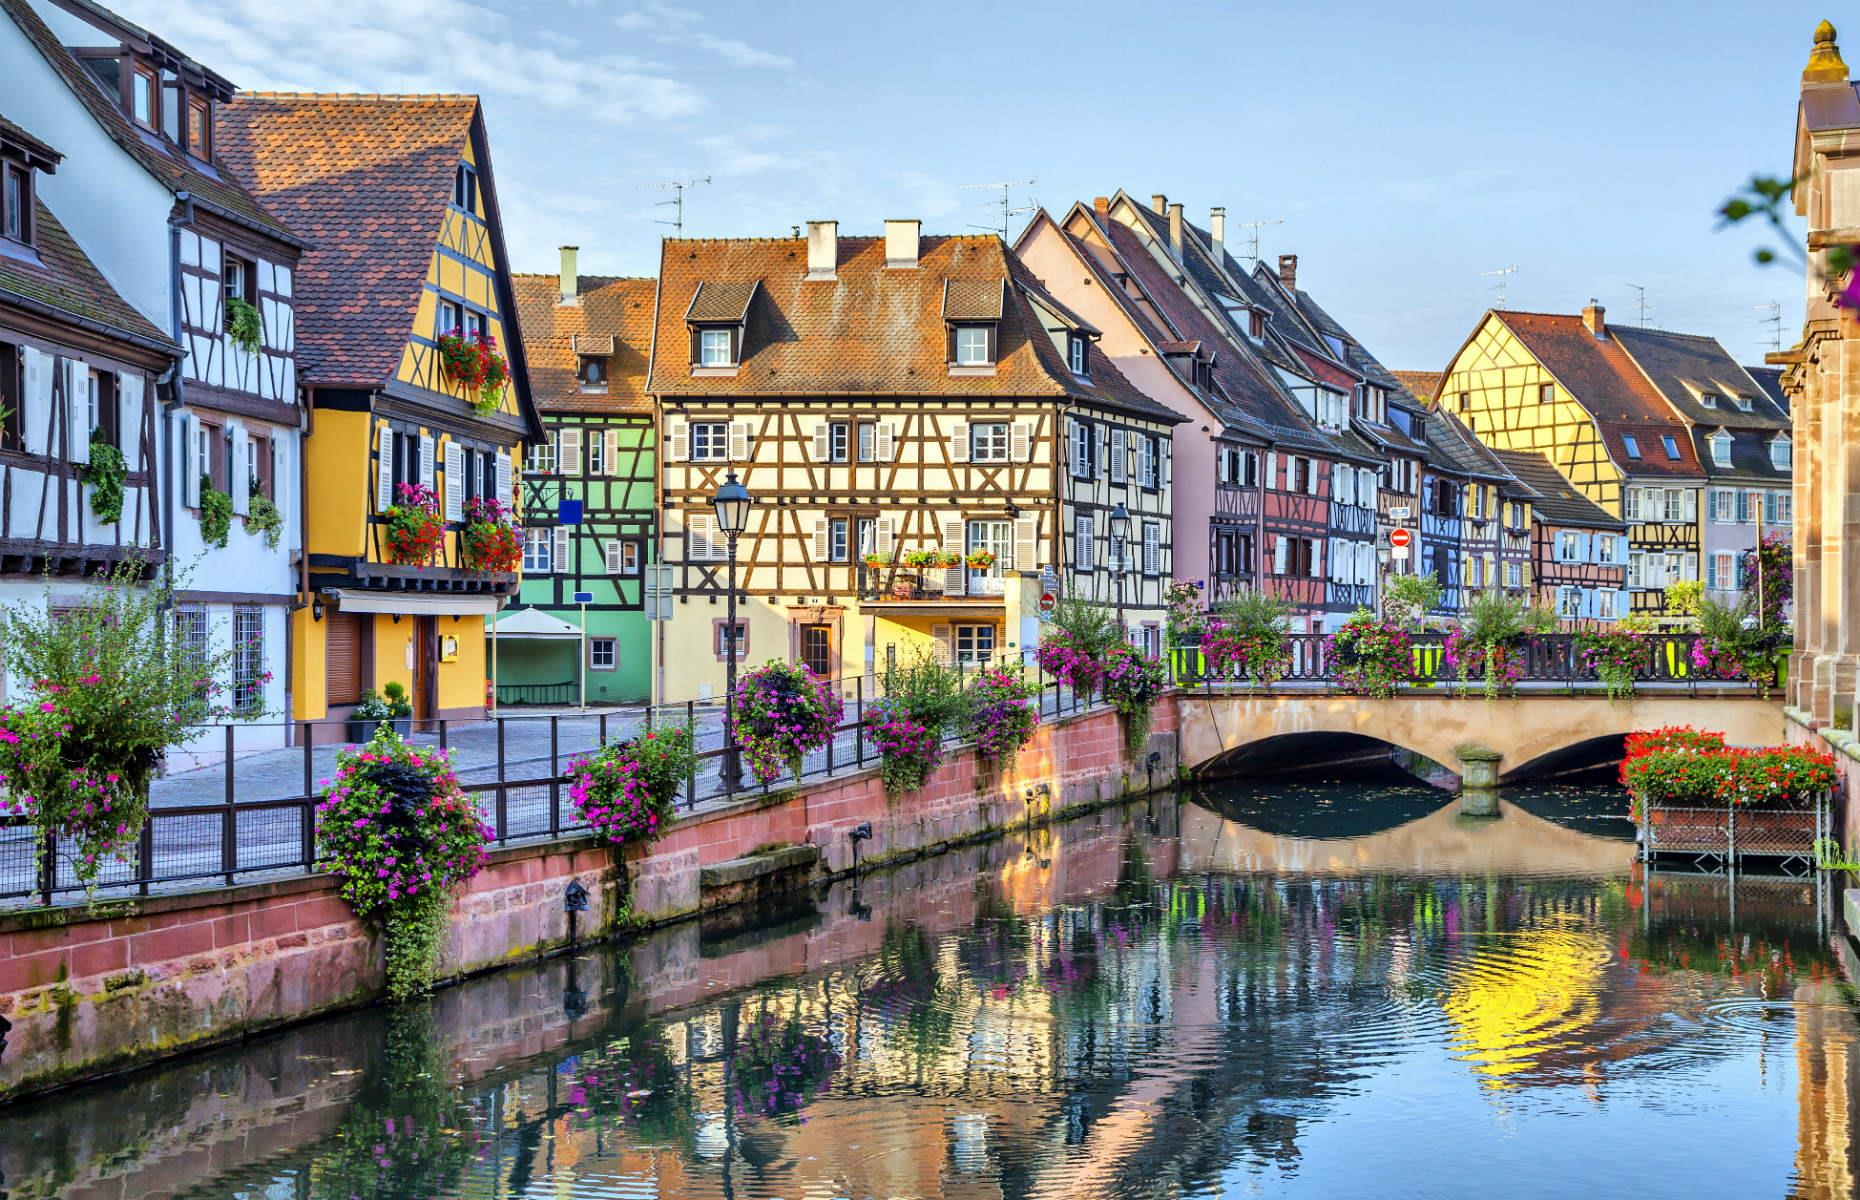 Slide 4 of 51: Winding streets, narrow canals and quaint, pastel-colored houses – Colmar has it all. The pretty town in the Grand Est region of northeastern France is a unique collection of medieval and early Renaissance buildings, including a beautiful 13th-century church. On top of looking every bit like a fairy-tale town, it's also celebrated for being the wine capital of France's Alsace region.